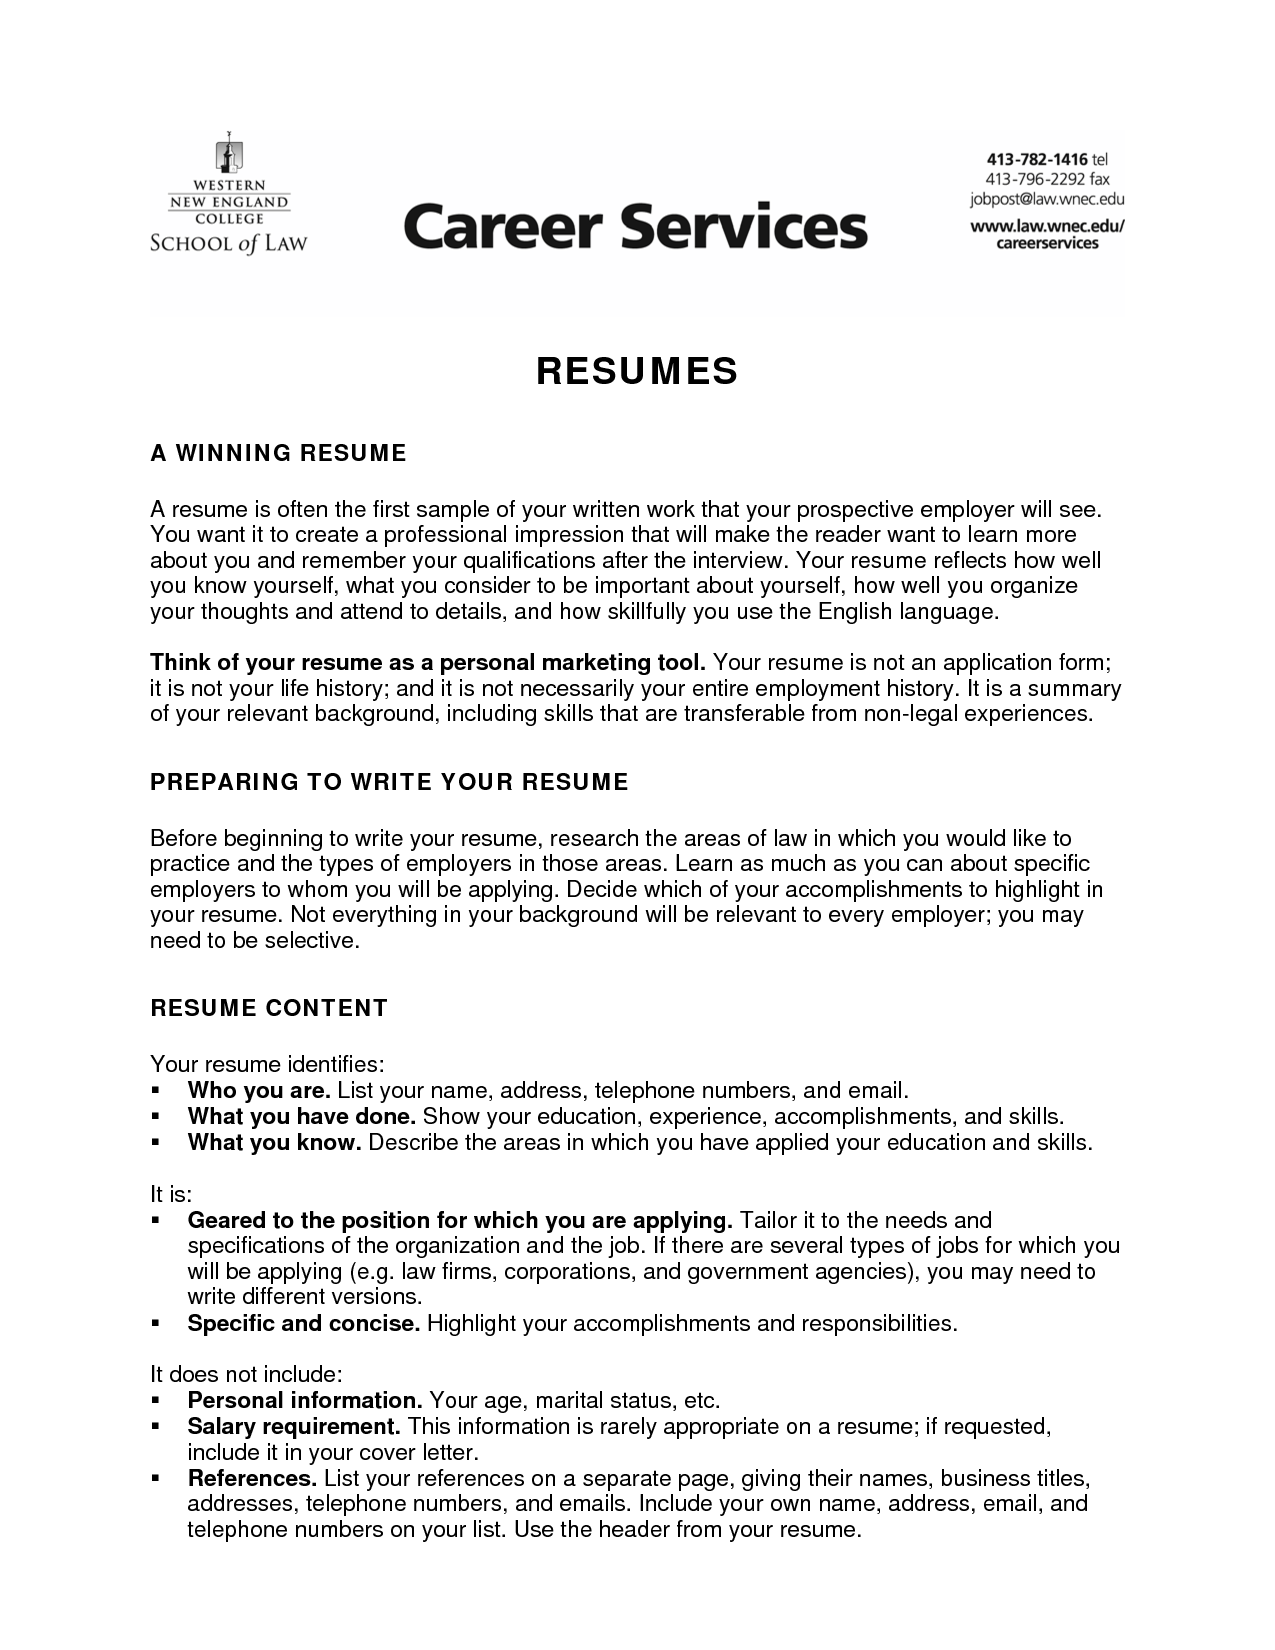 how to write the objective in a resumes